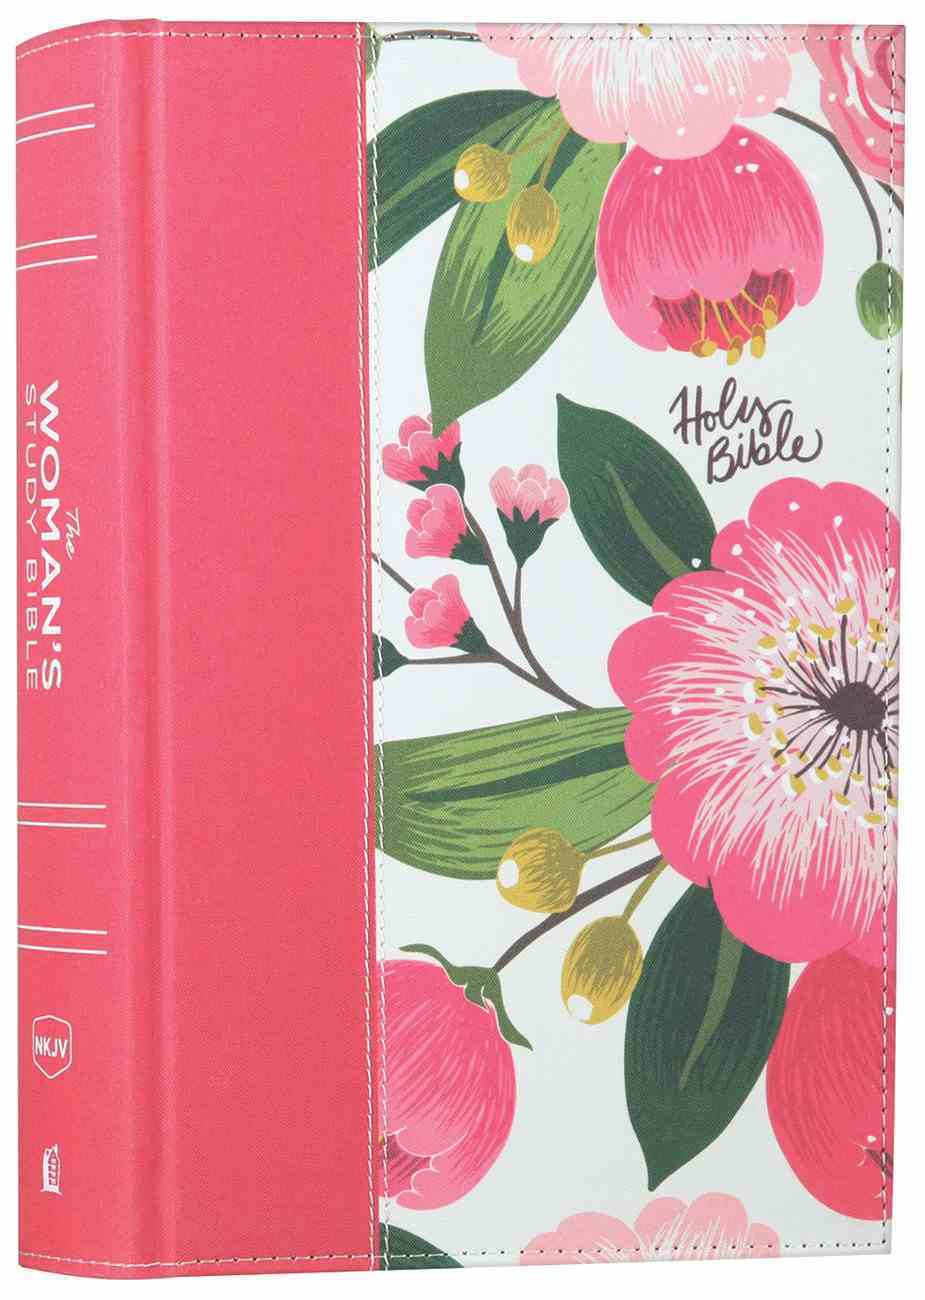 NKJV the Woman's Study Bible Pink Floral Full-Color Fabric Over Hardback